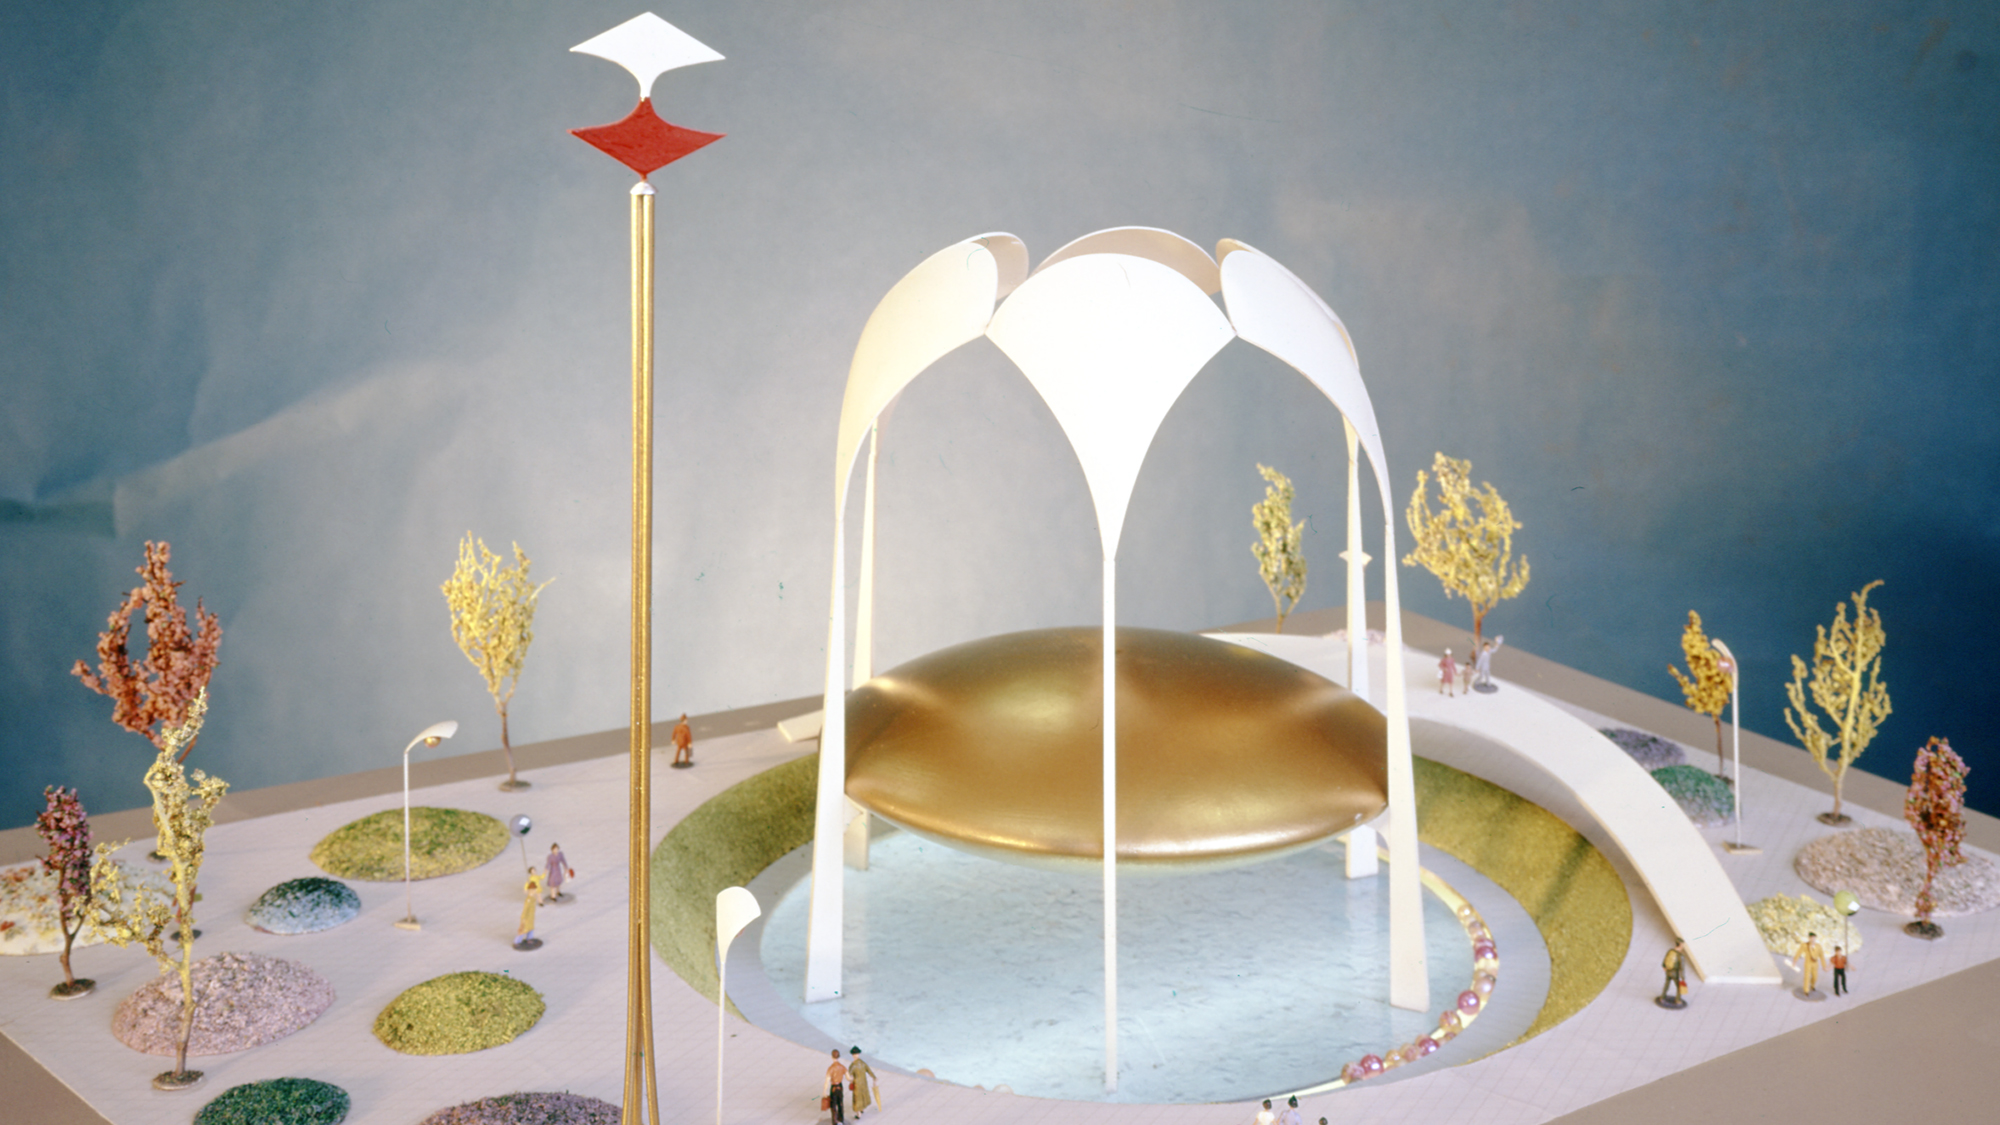 Model of the 1964 Johnson Wax Pavilion at the World's Fair